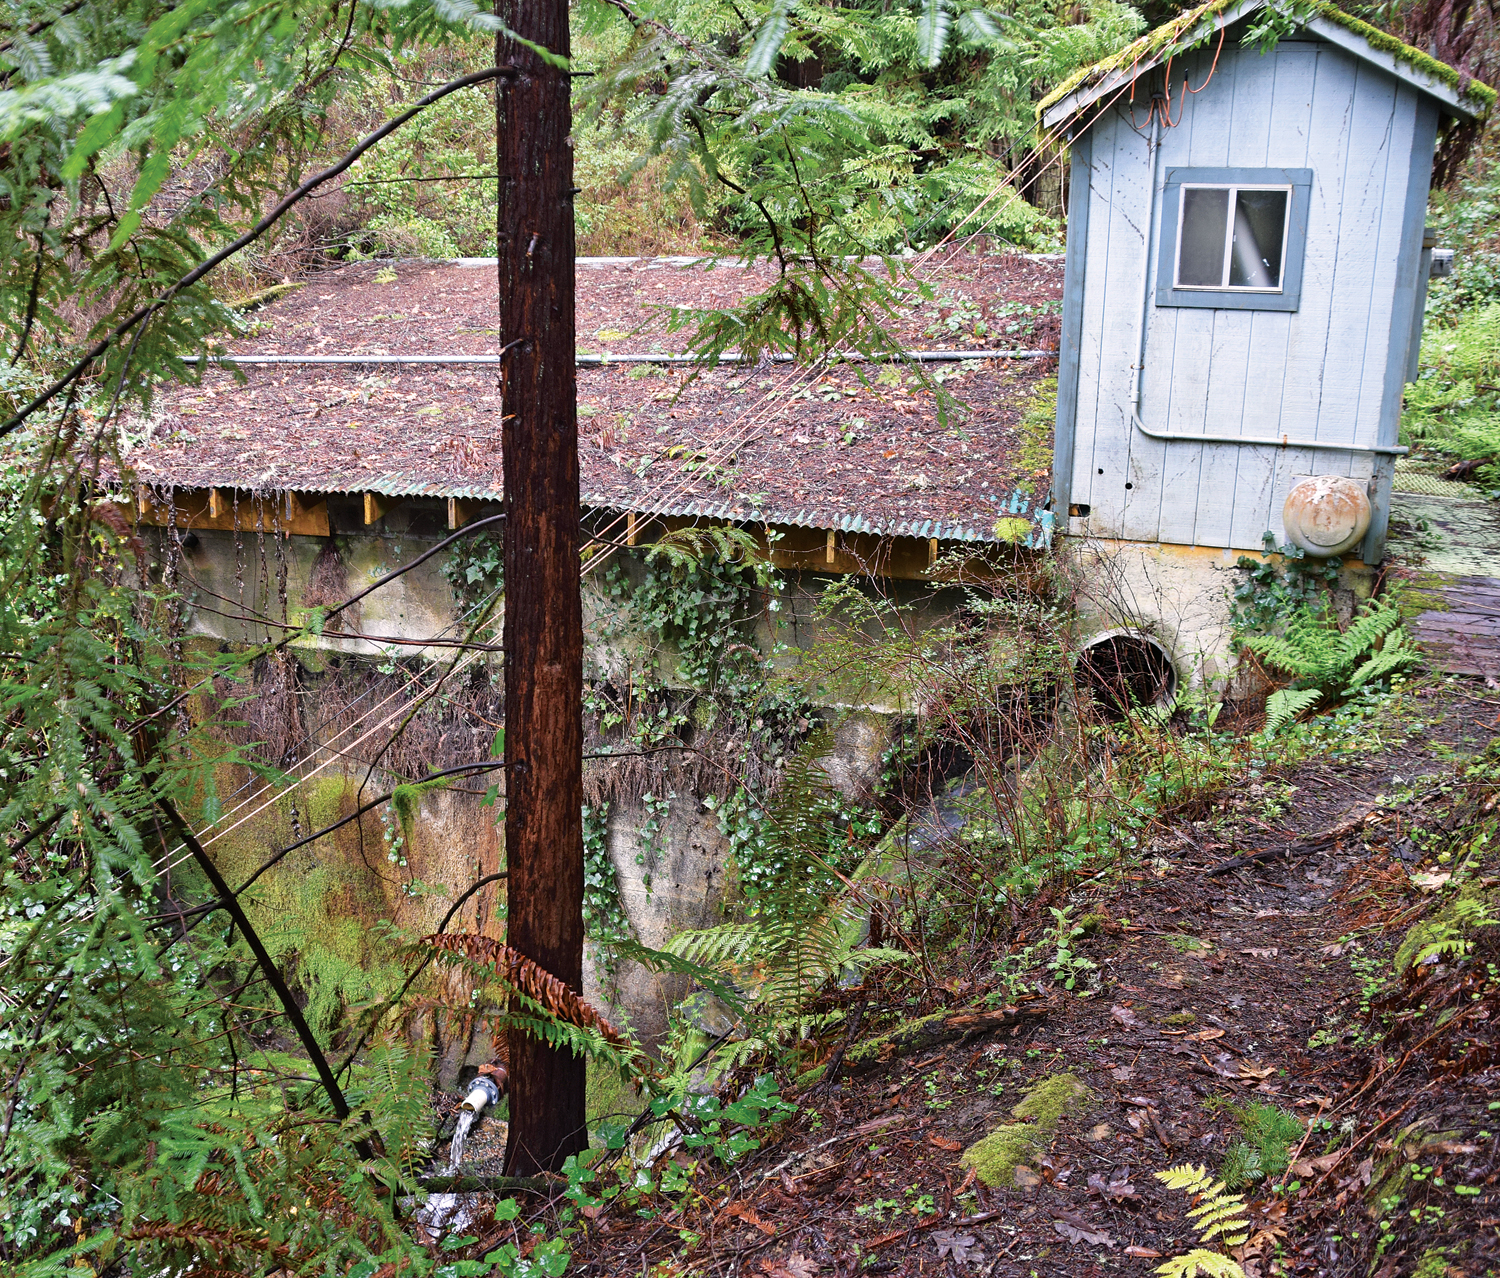 The old infrastructure at the Redway Community Services District's unnamed spring. (Photo by Sandy Feretto)